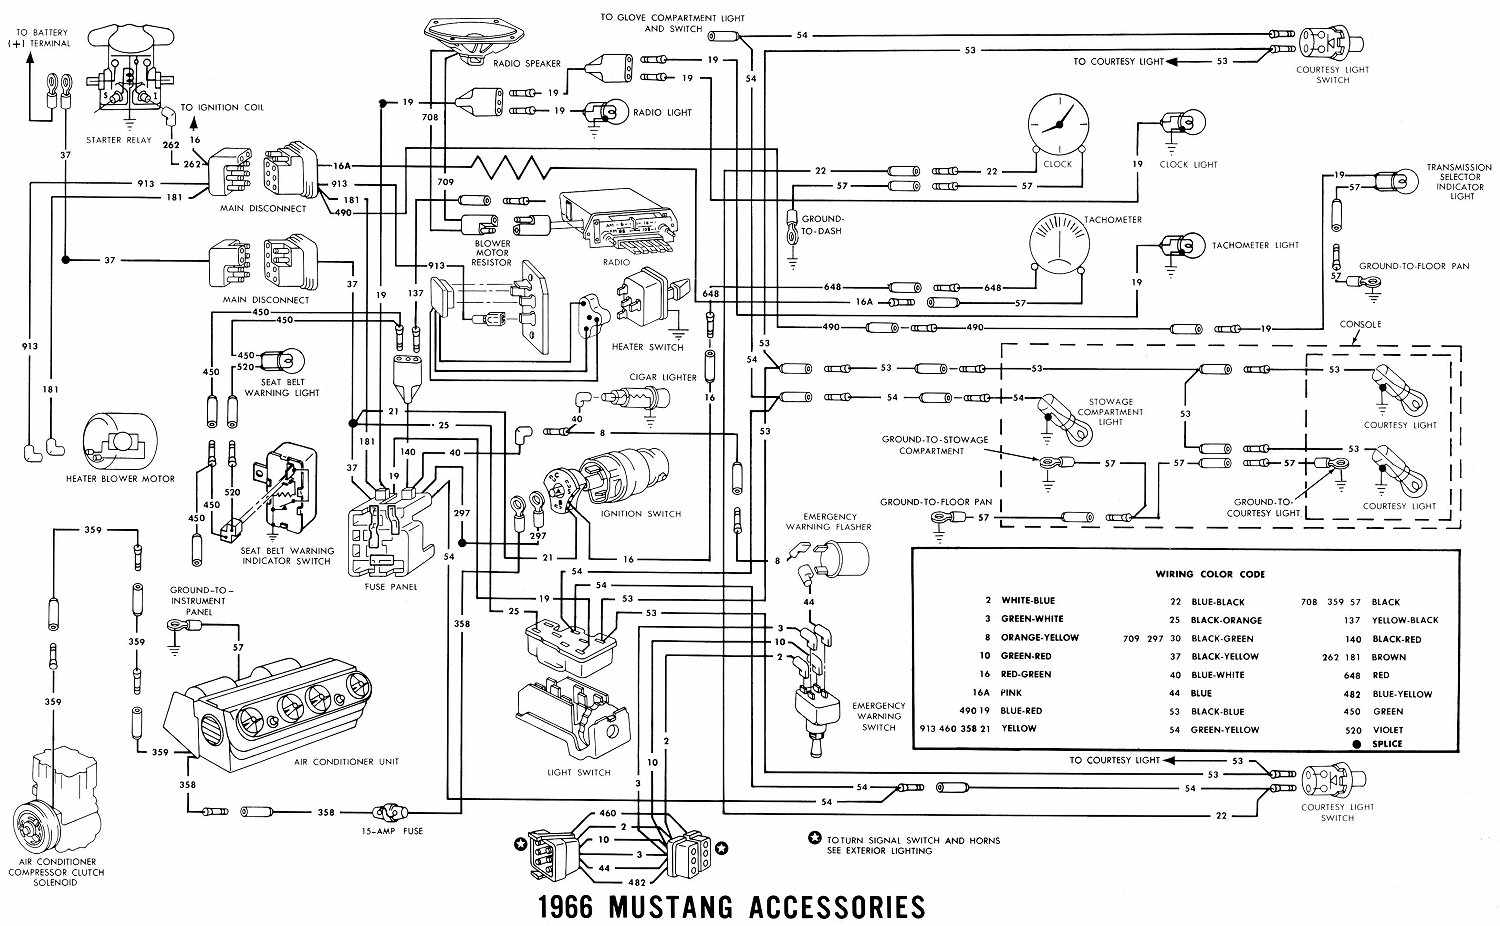 1966 ford mustang accessories electrical wiring diagrams. Black Bedroom Furniture Sets. Home Design Ideas